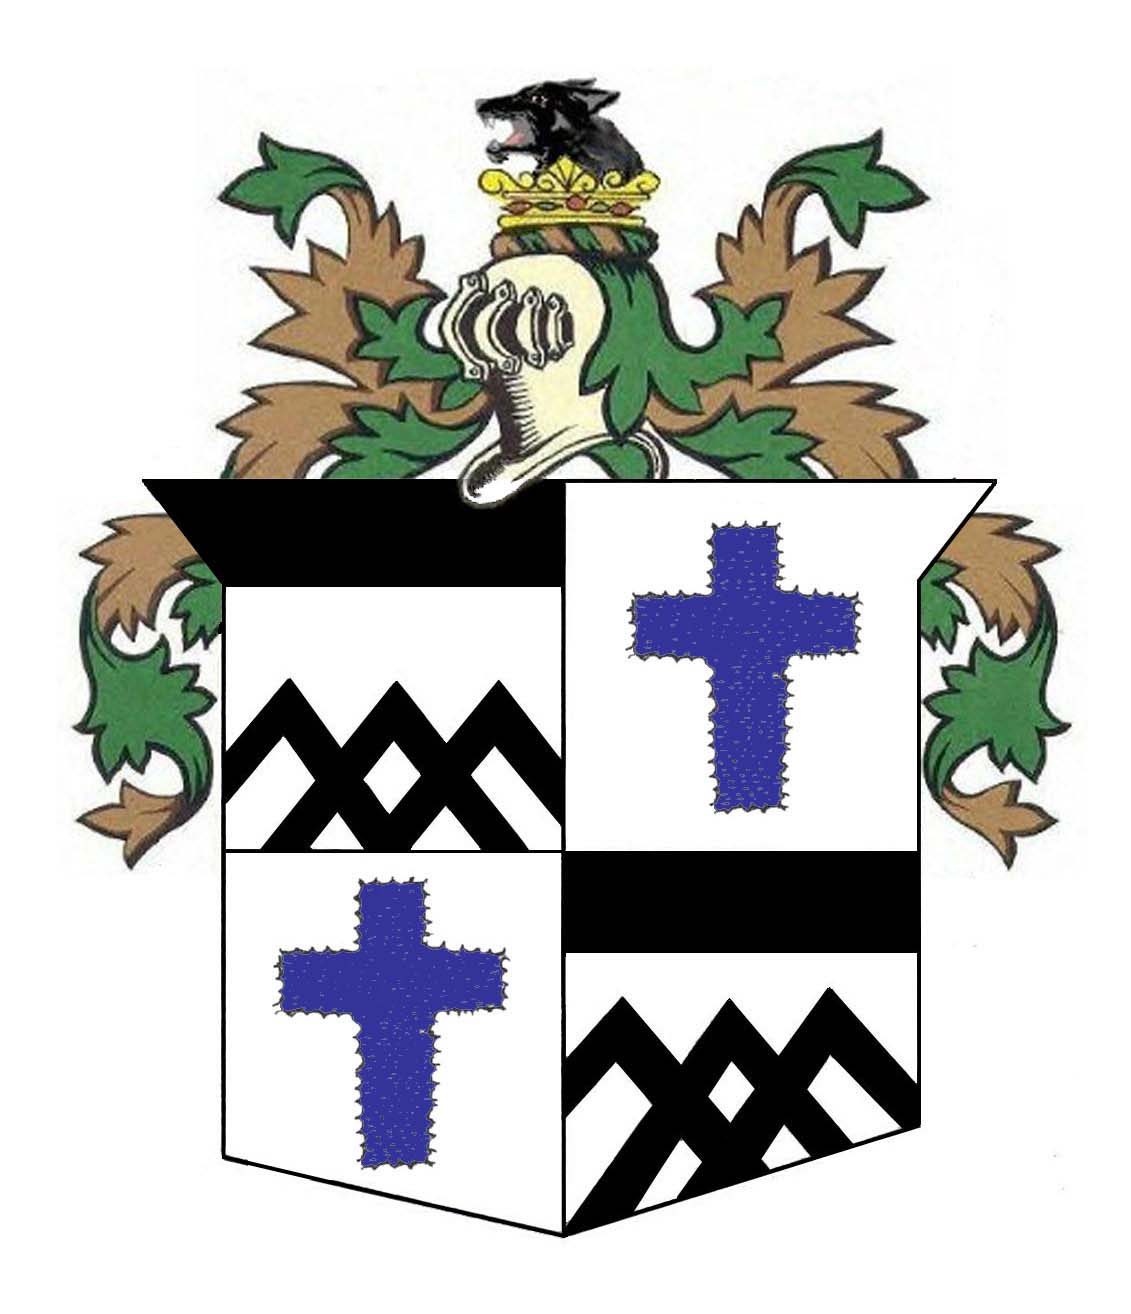 Coat of arms claybourn genealogical society coat of arms with engrailed cross biocorpaavc Choice Image